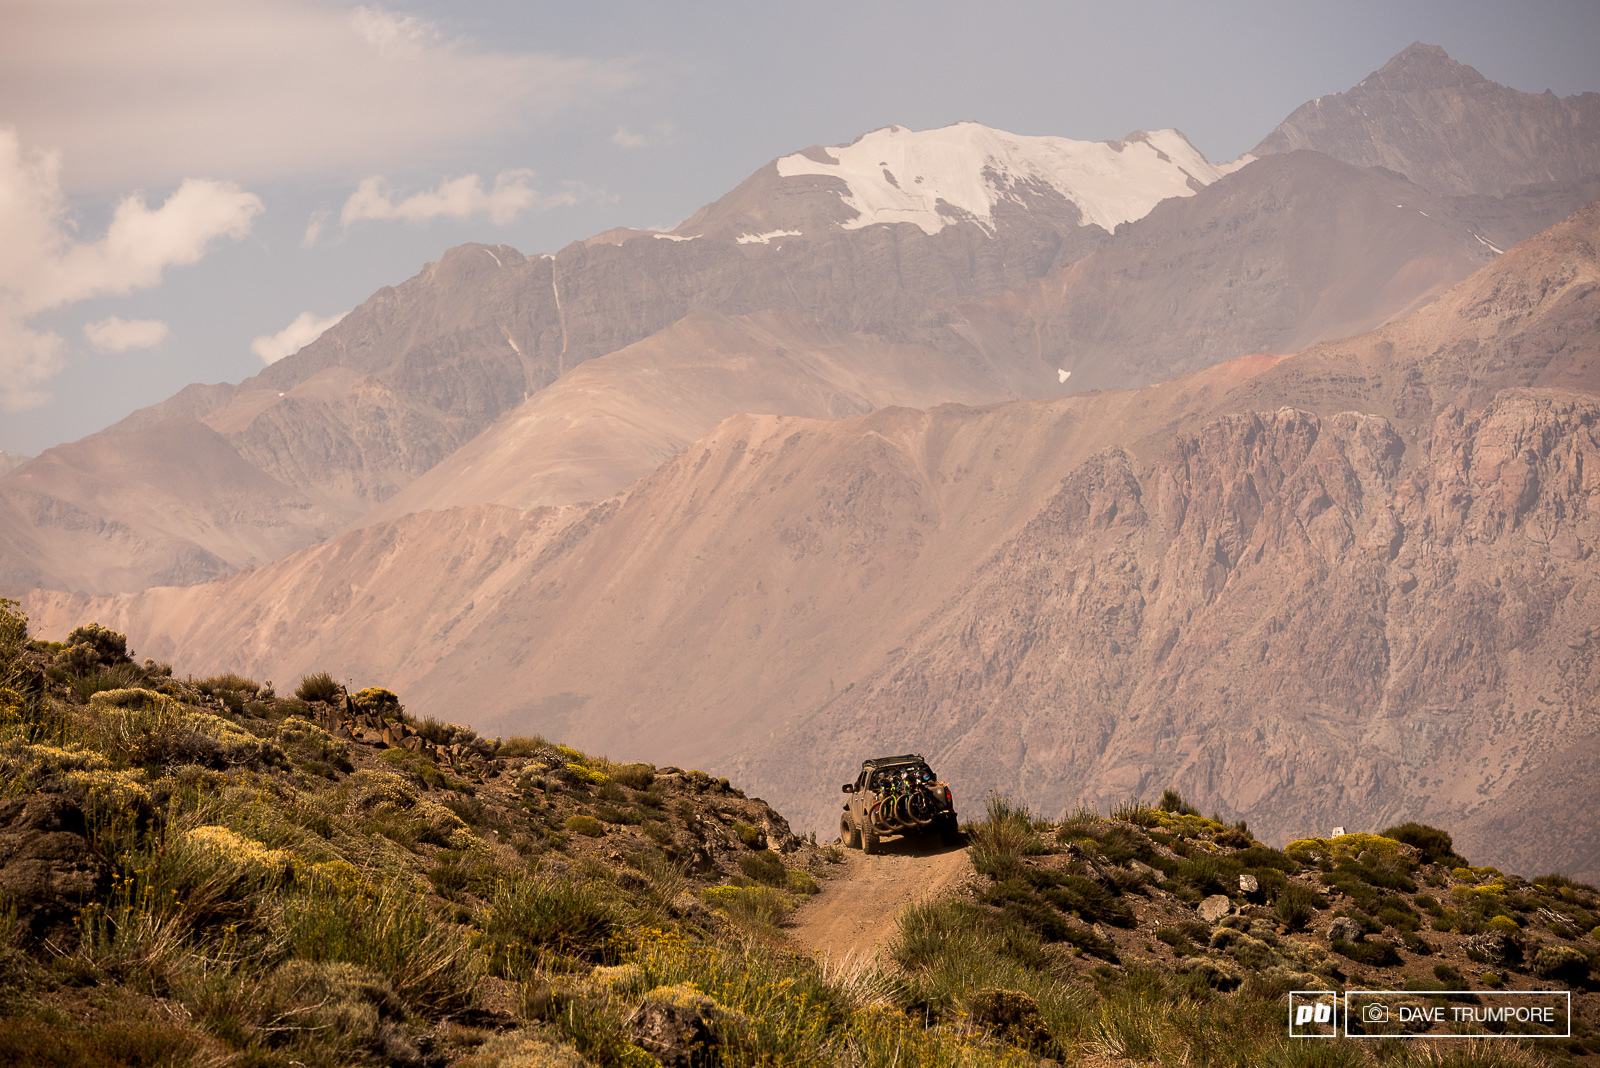 The 2400 meter drive to access the fresh terrain on day 3 was never short on epic views.